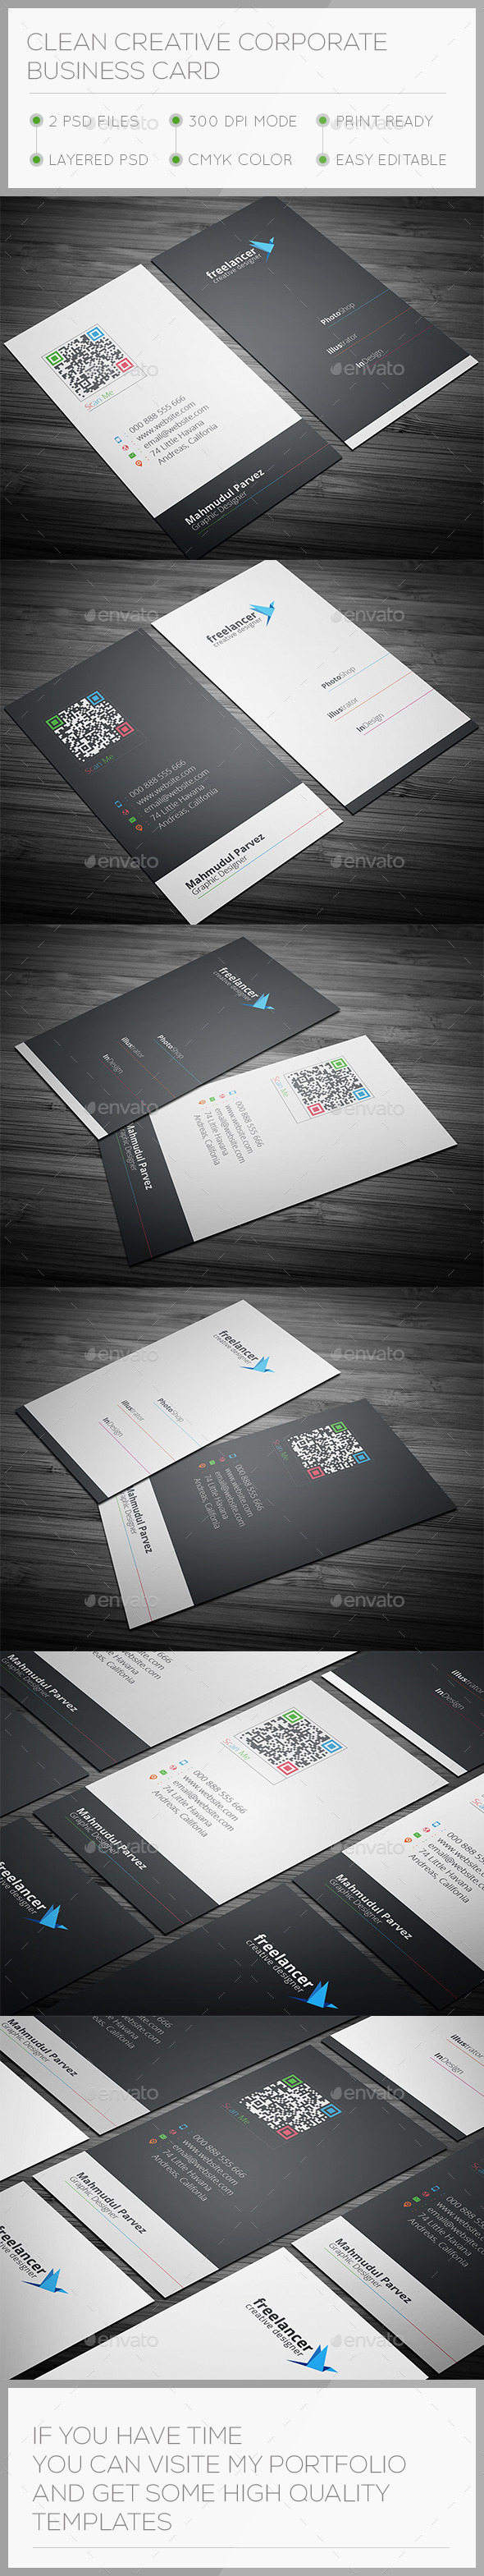 Clean & Creative Business Card - Creative Business Cards